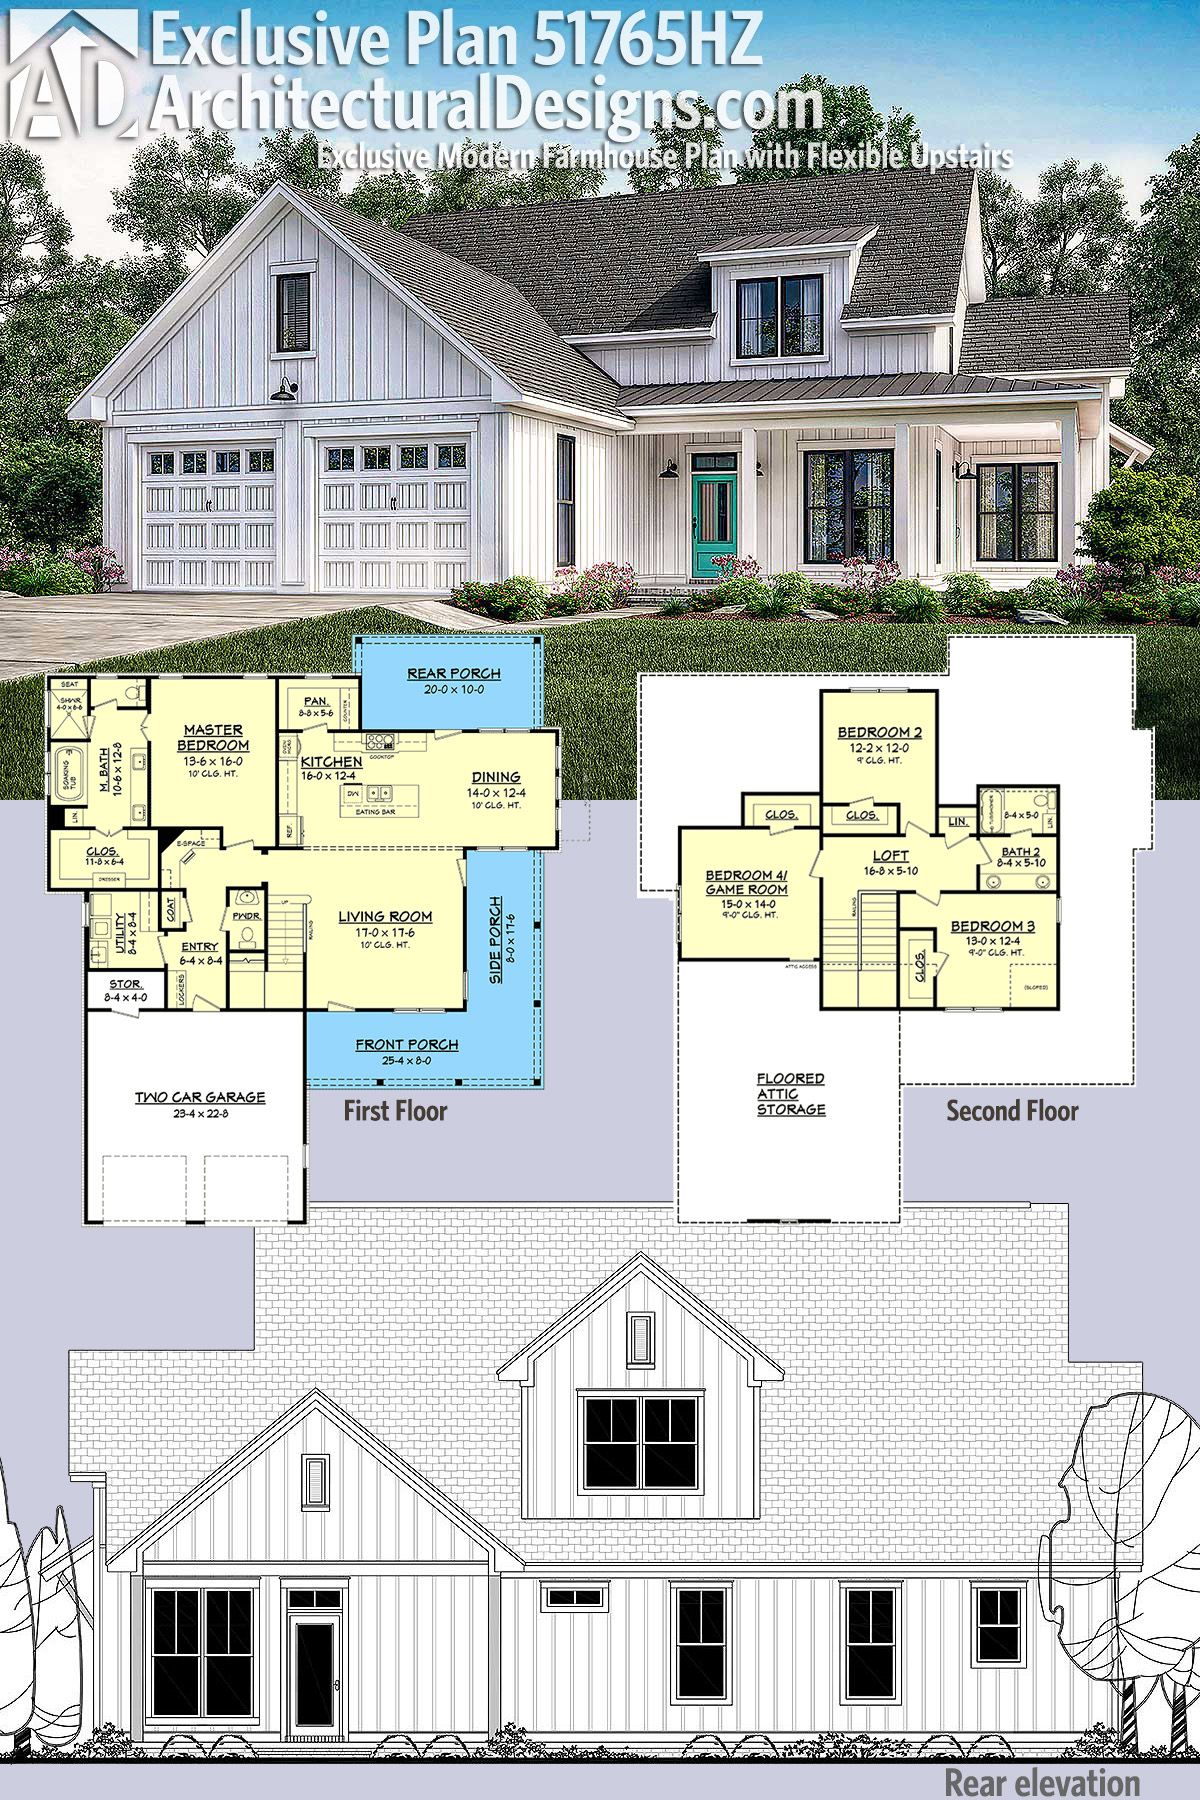 Plan 51765hz Exclusive Modern Farmhouse Plan With Flexible Upstairs In 2020 Modern Farmhouse